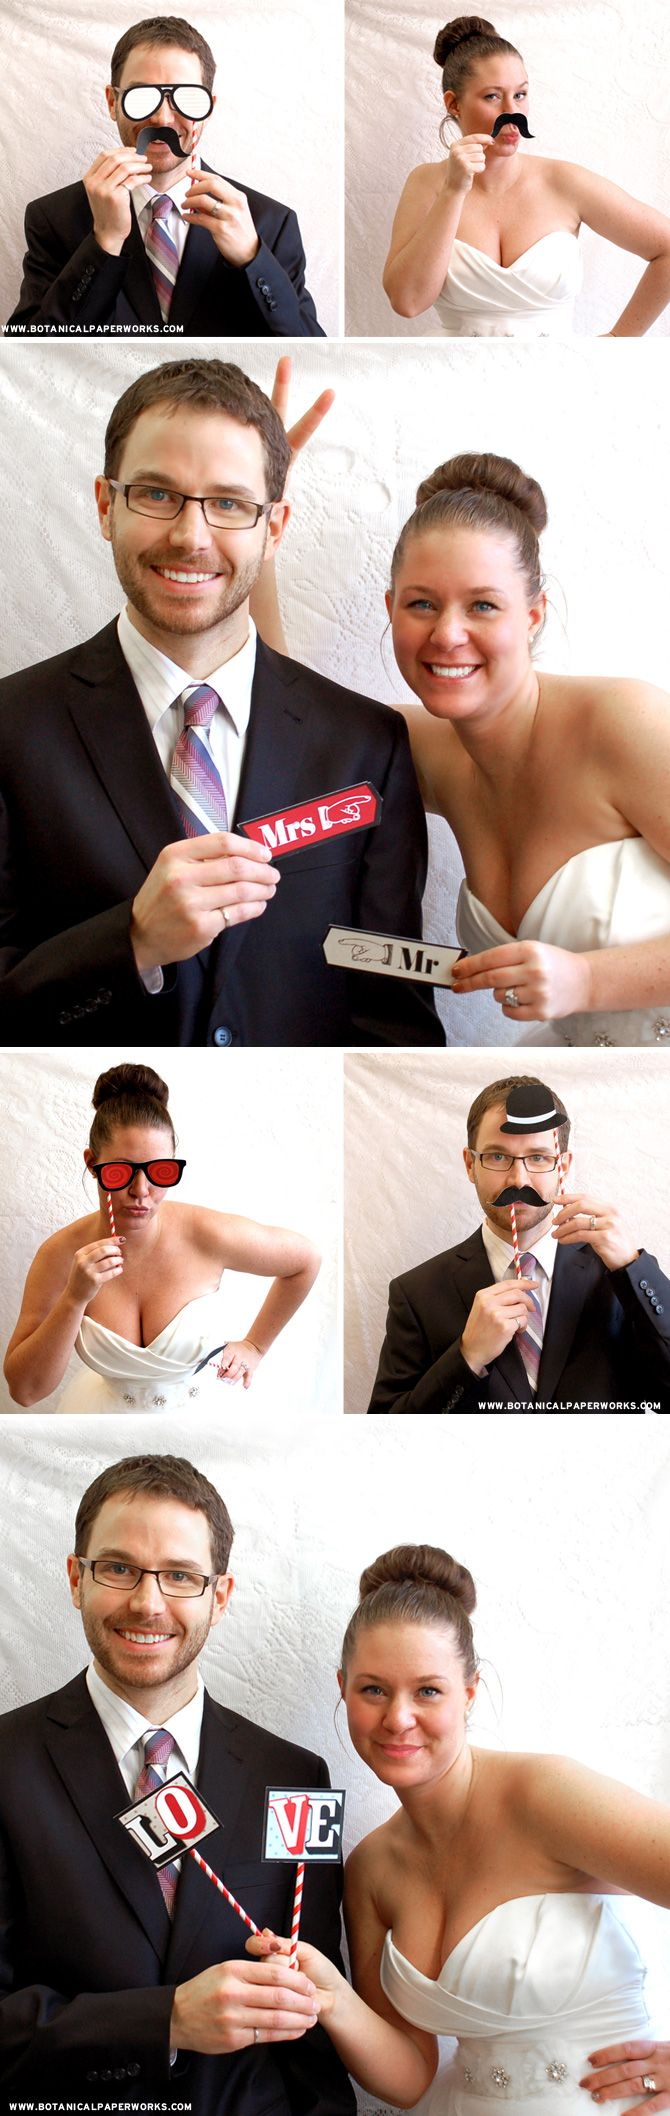 Pin For Later 25 Printables Youll Need A Fun Wedding Photo Booth Mr Props Is Not Complete Without These Adorable